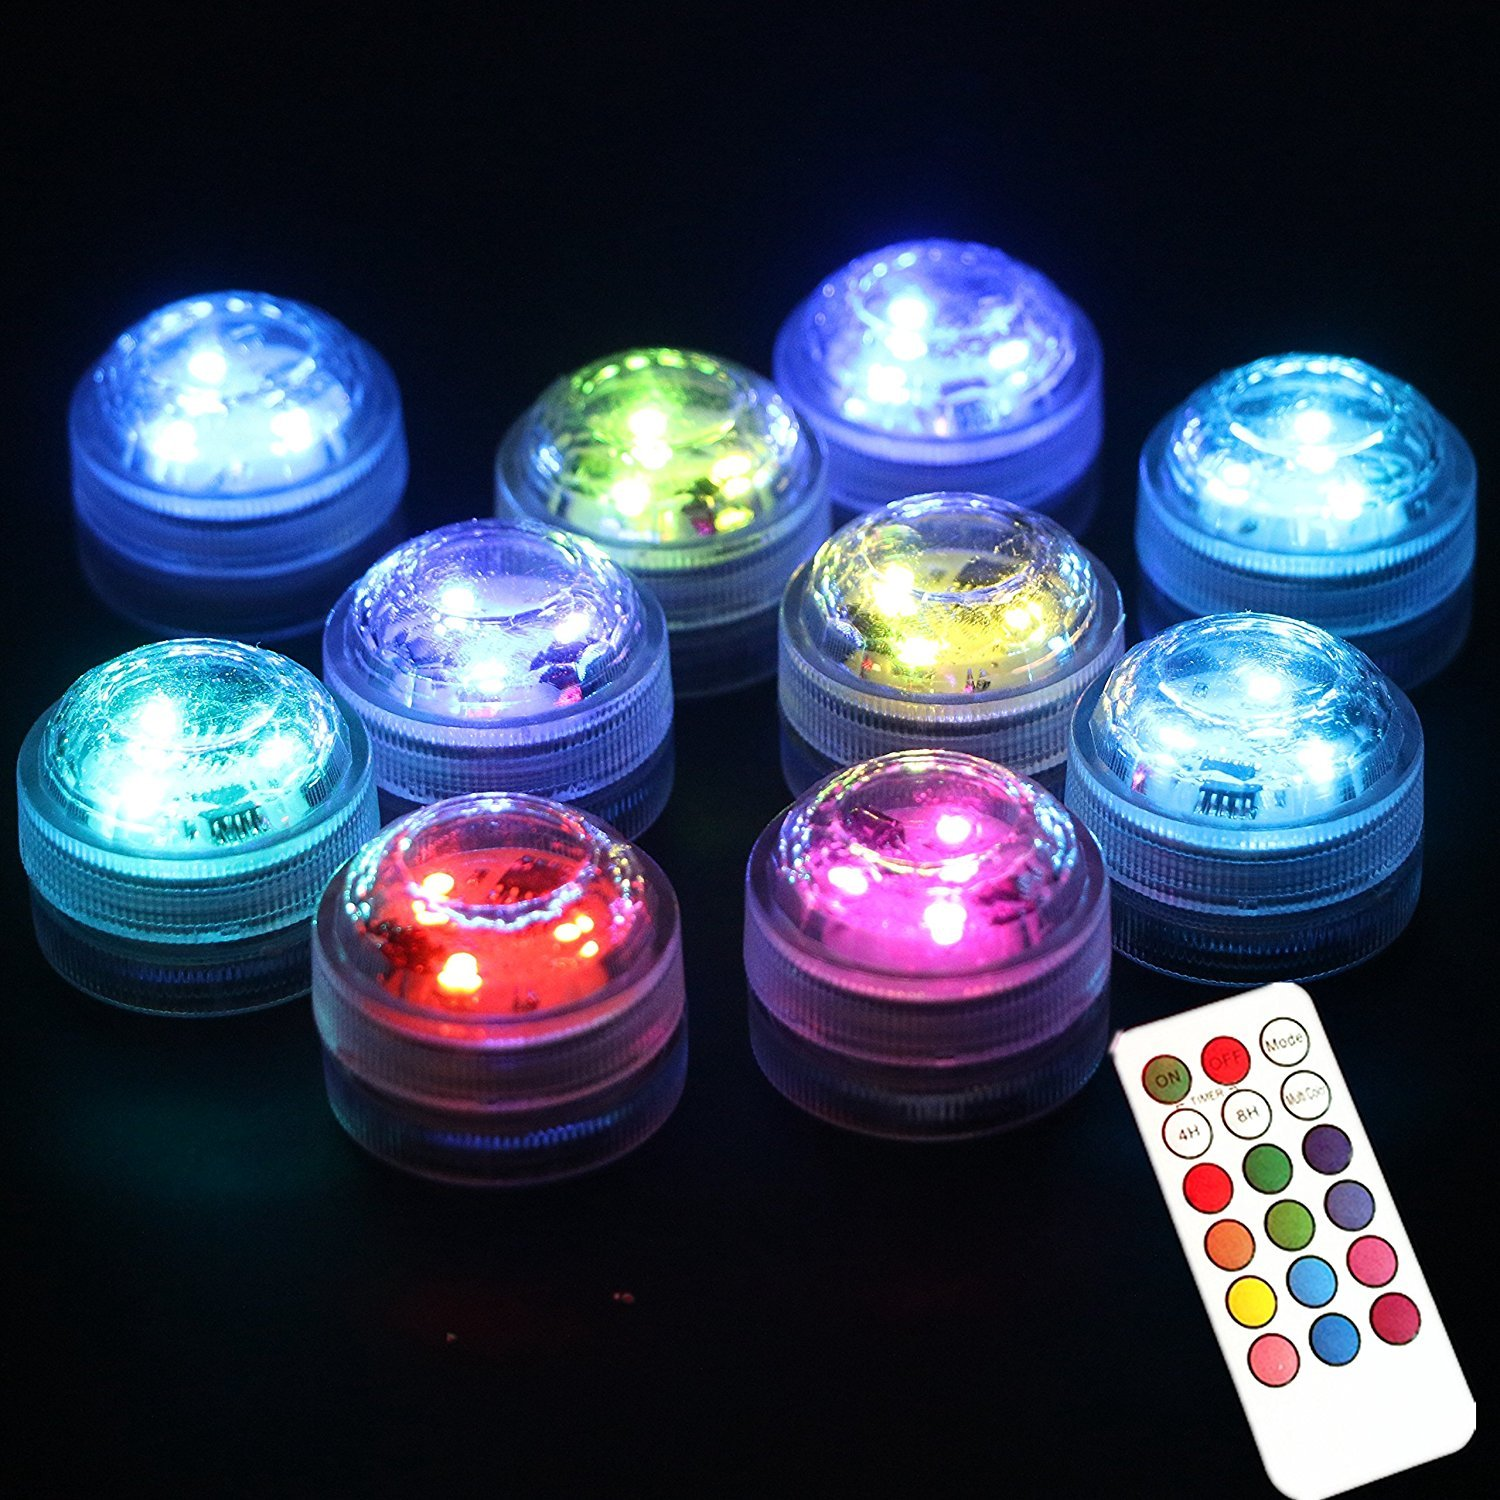 ARDUX 3LEDs Multicolor LED Waterproof Submersible Candle Light with Remote Control for Party Wedding Home Decoration (10pcs/lot)